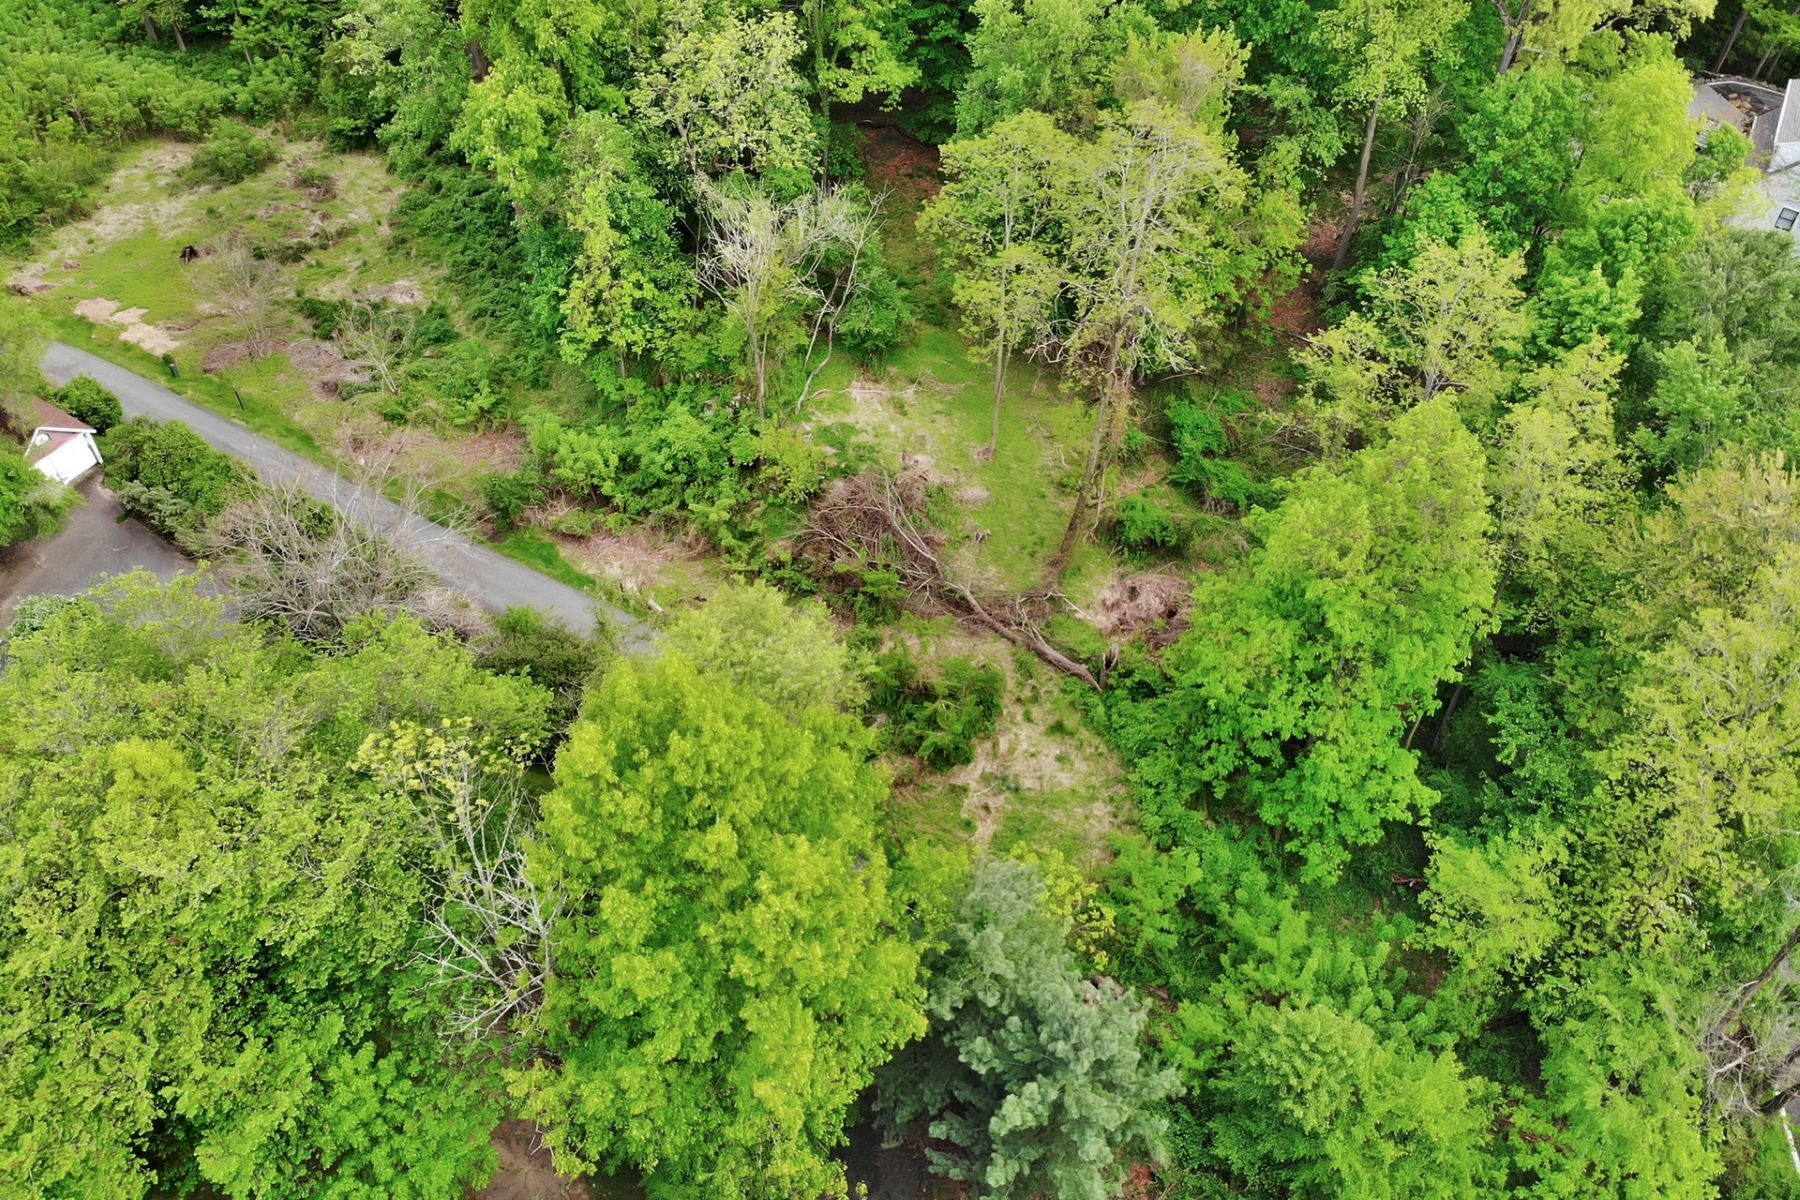 Land for Sale at Amazing opportunity to build your dream home 32 Rockleigh Rd Rockleigh, New Jersey 07647 United States